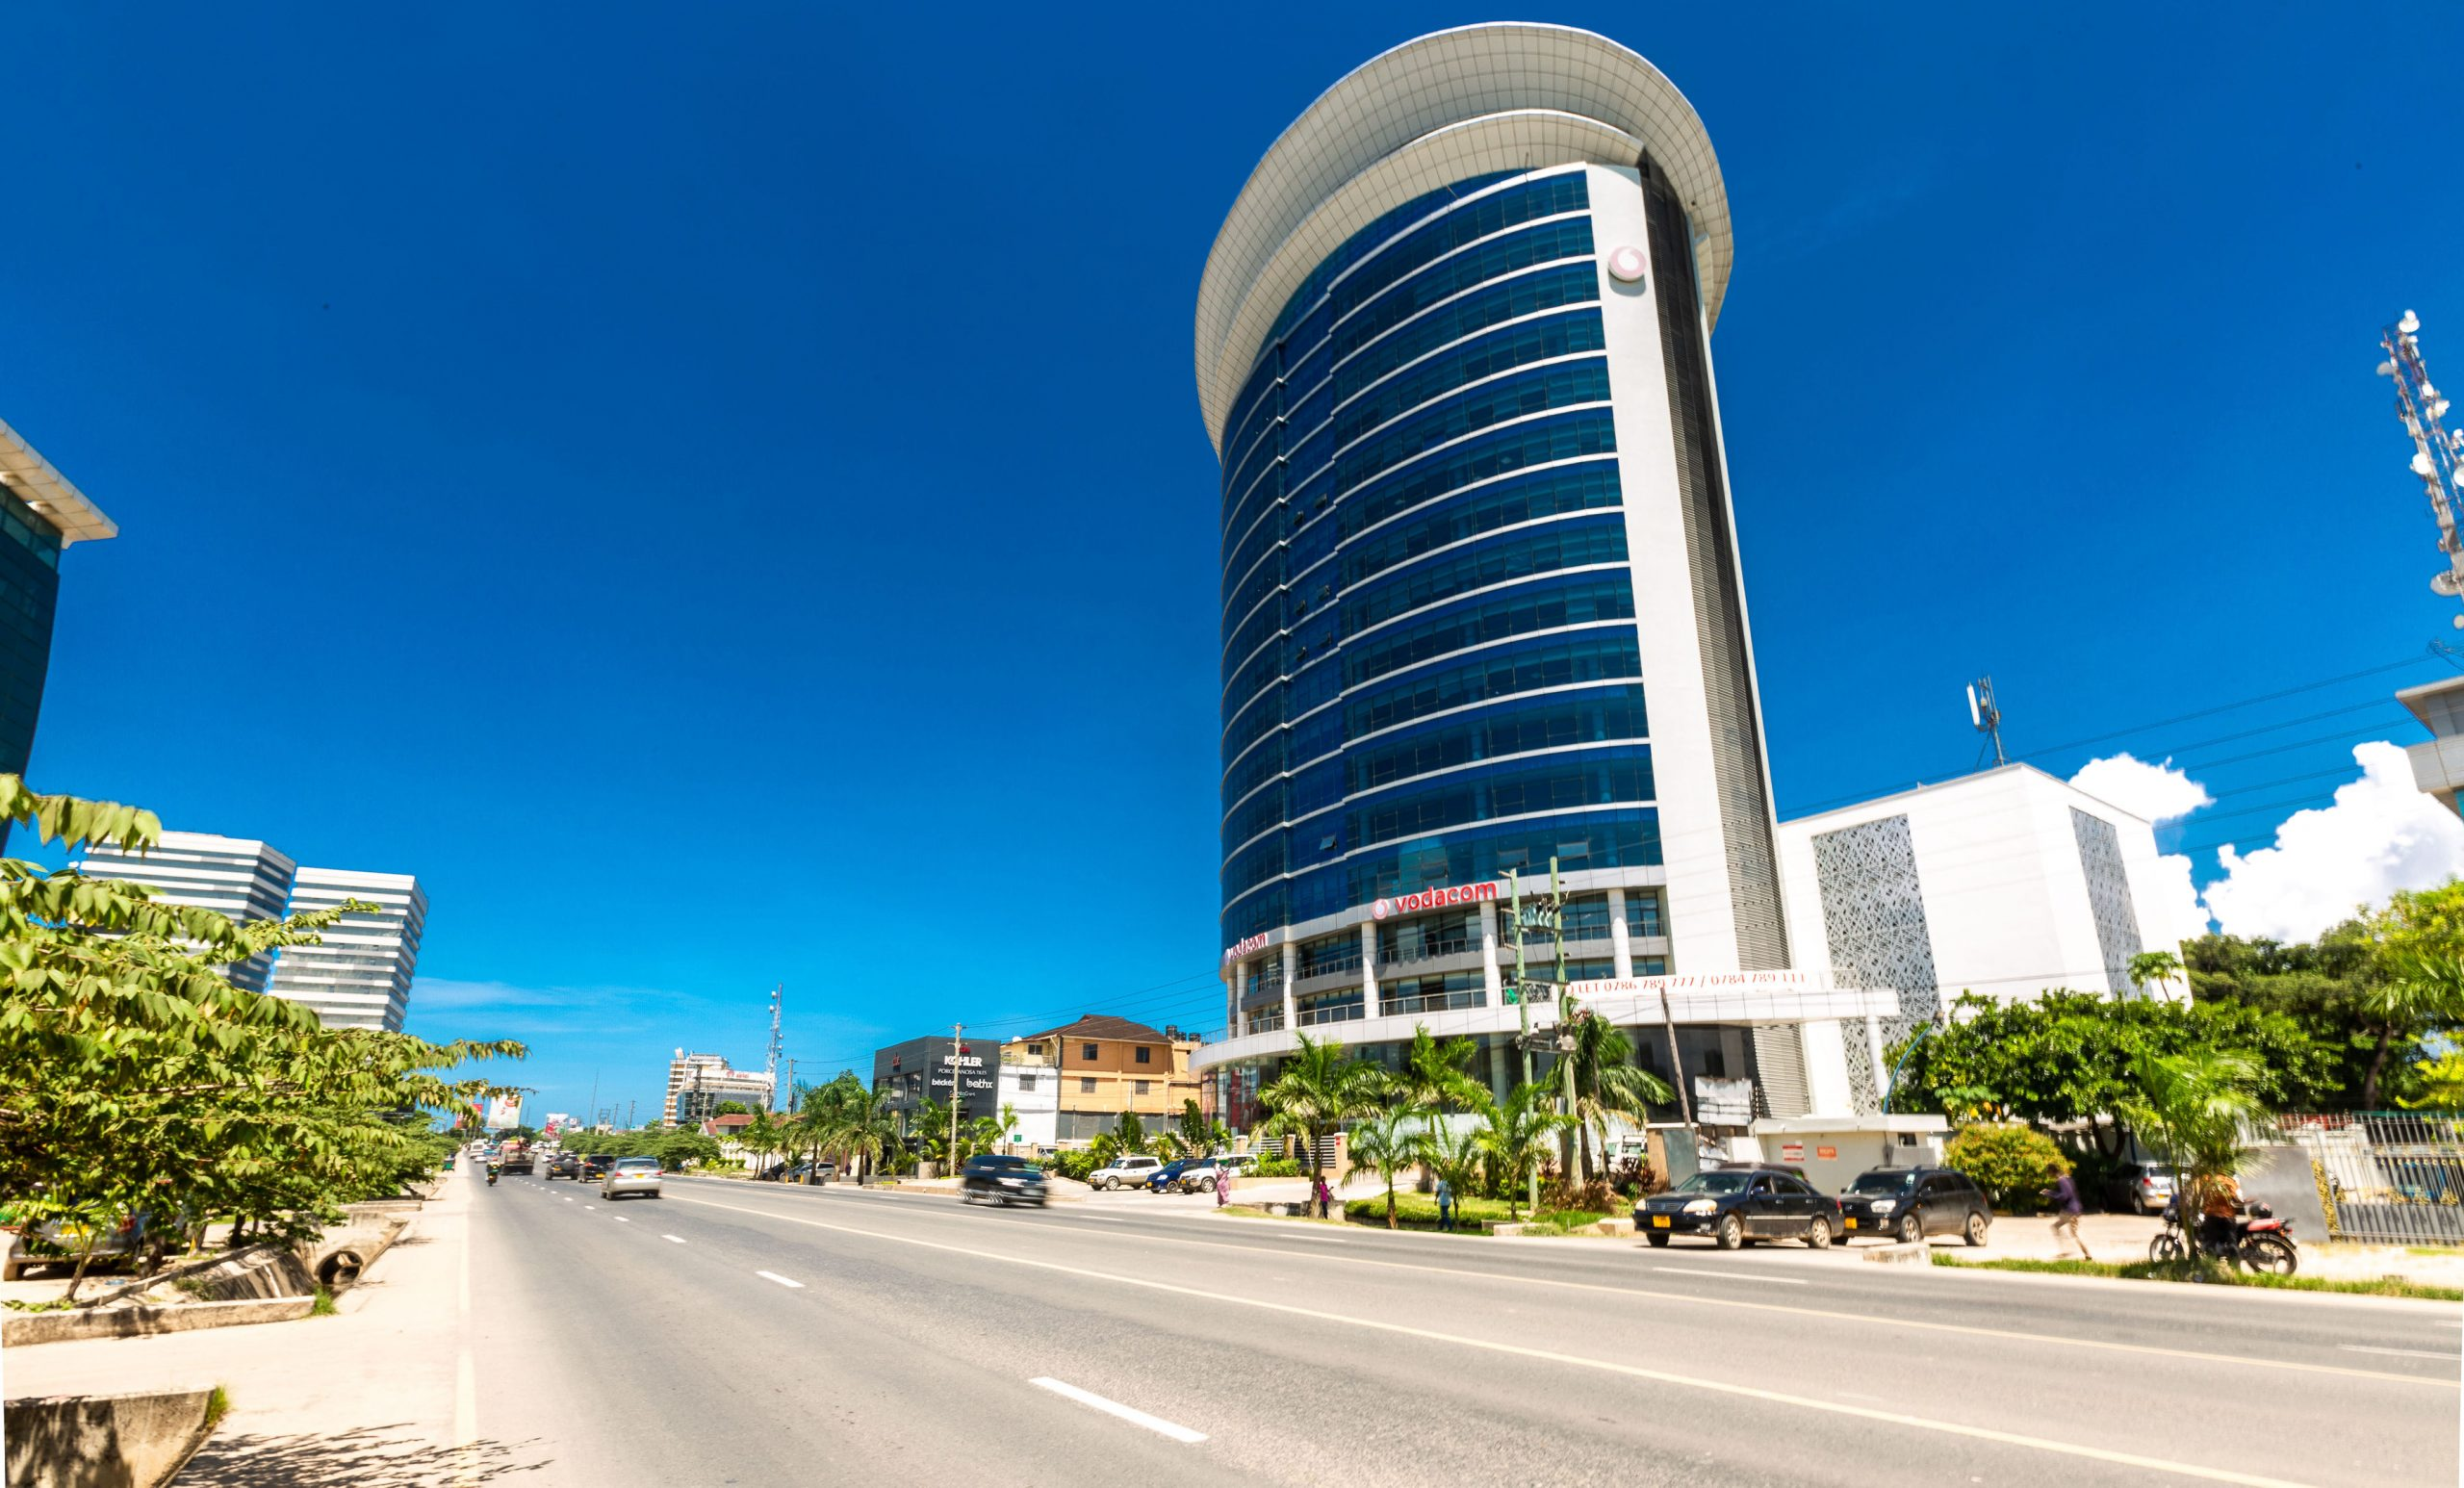 Office For Rent at Vodacom Tower Dar Es Salaam